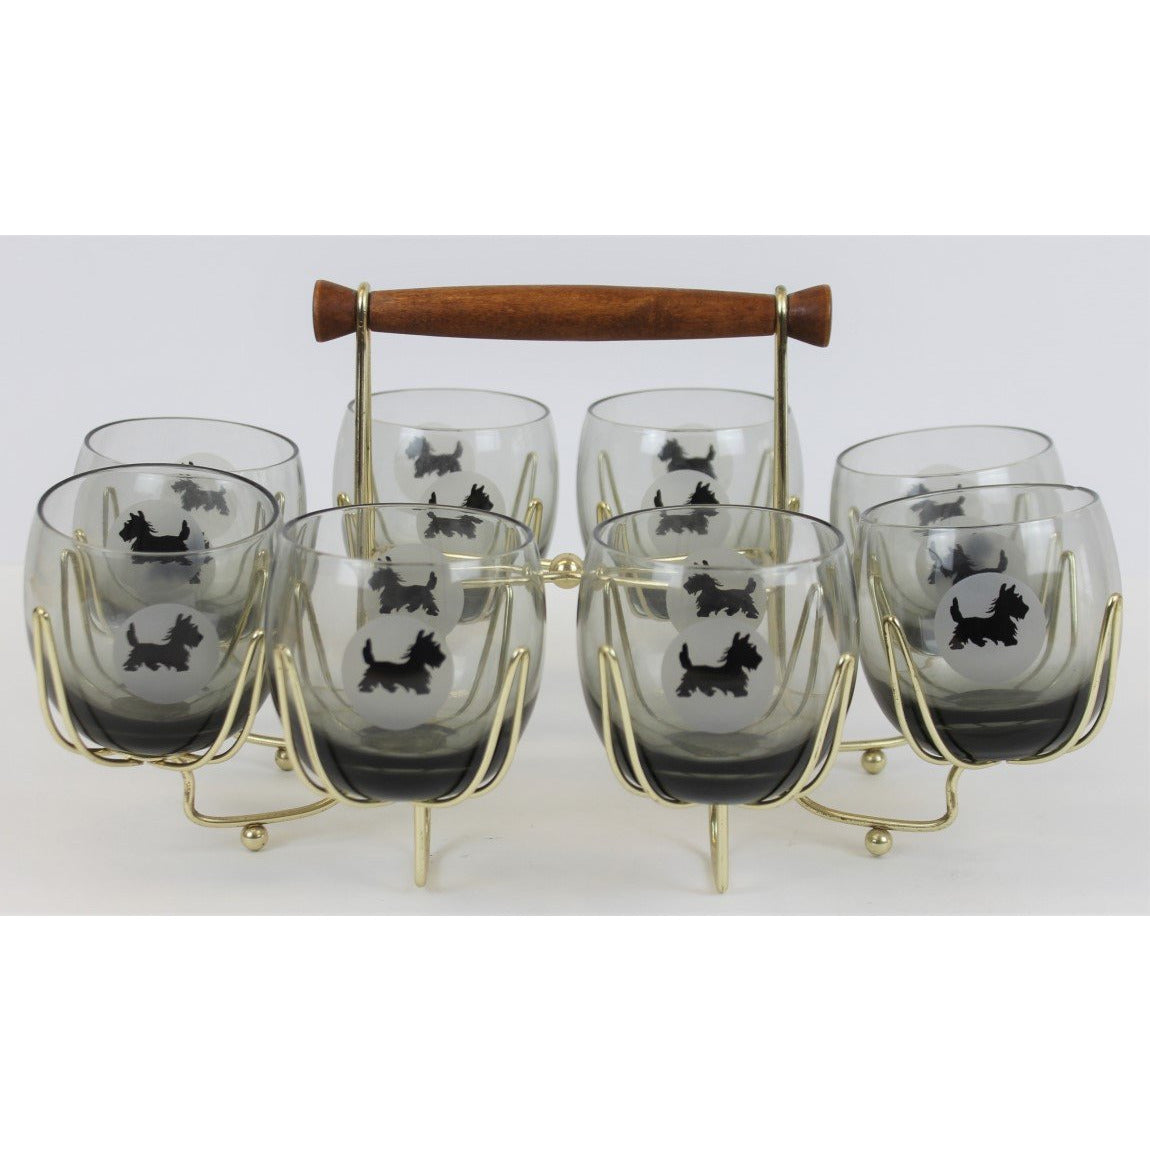 Set of 8 Old-Fashioned Glasses with Scottie Dogs and Brass Carrier